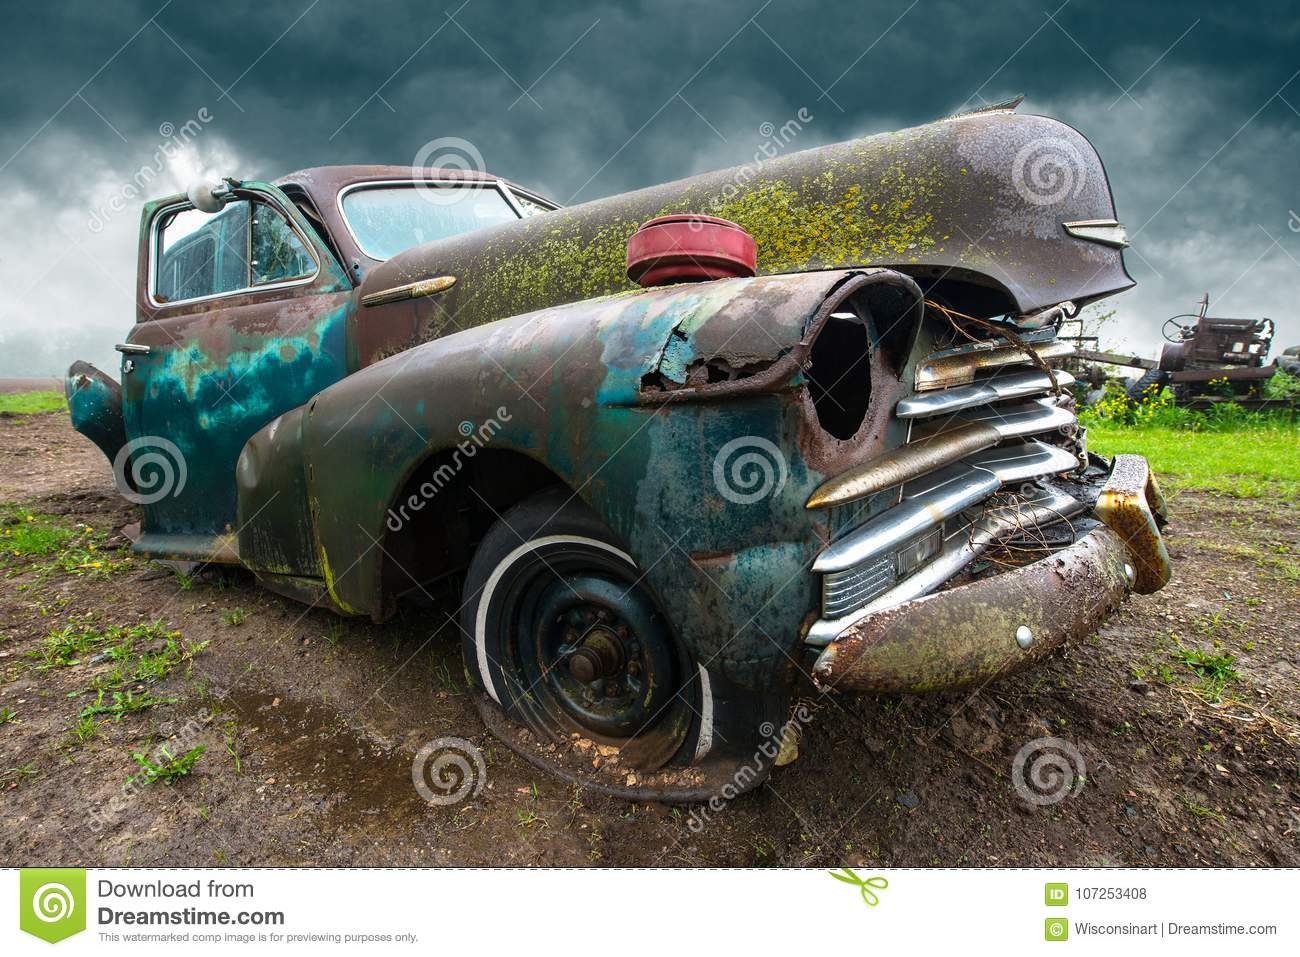 176 183 Classic Car Photos Free Royalty Free Stock Photos From Dreamstime